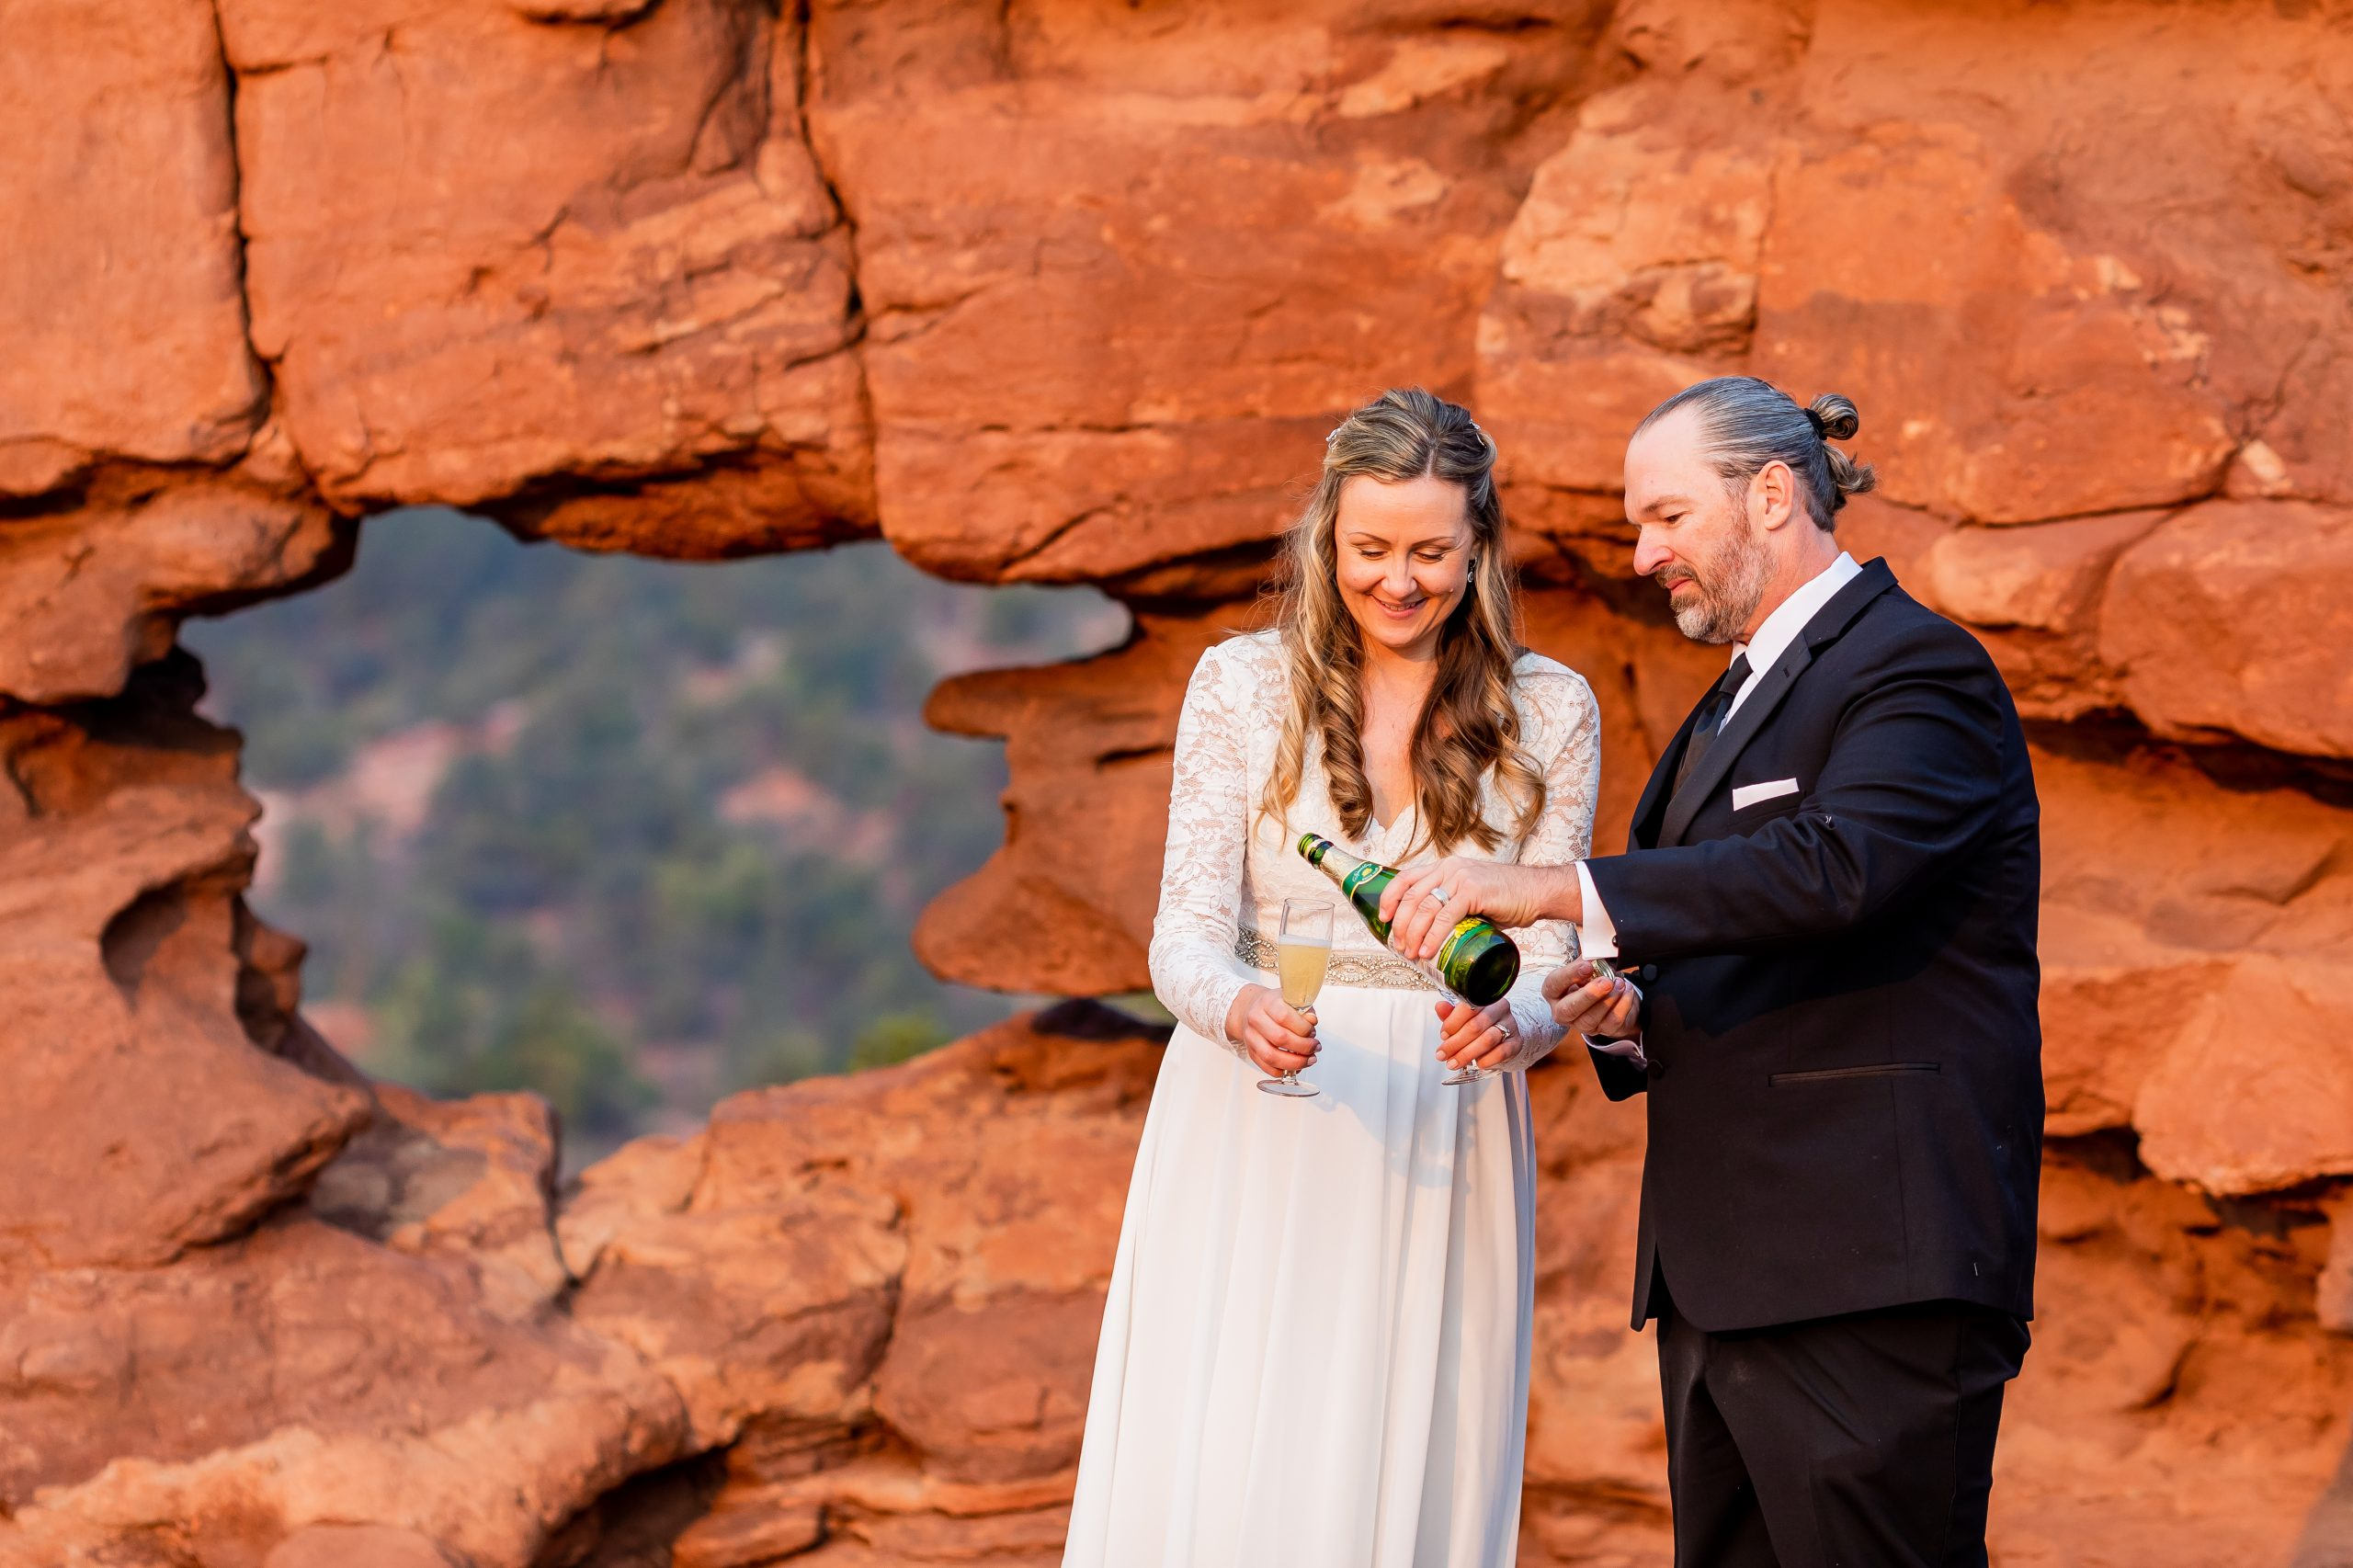 Toasting your Elopement at Garden of the Gods